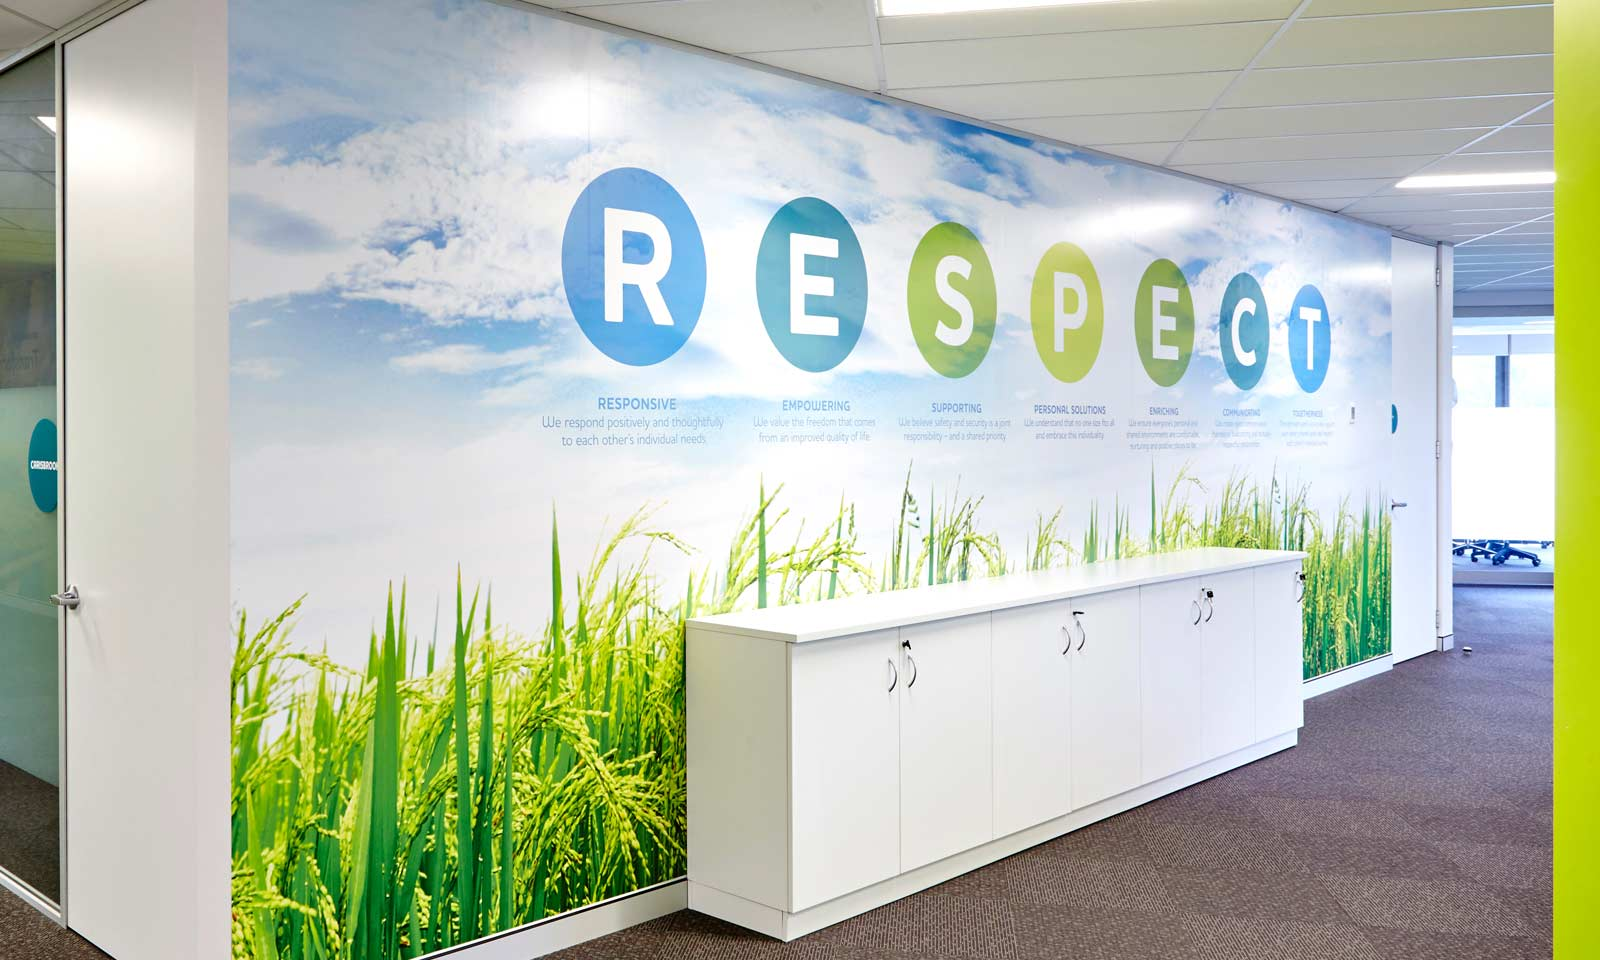 BaptistCare RESPECT values internal signage part of the branded environment.